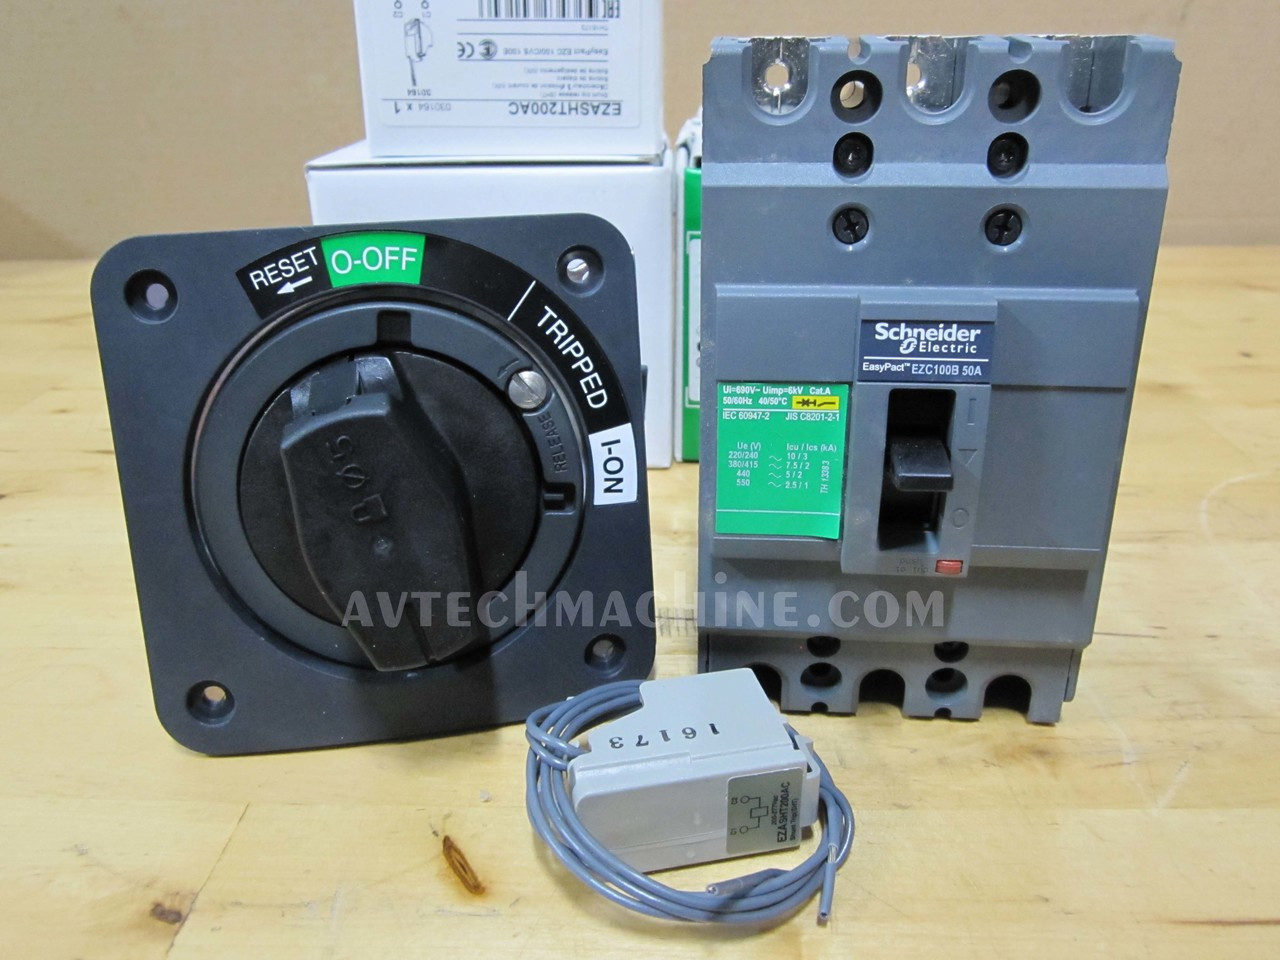 Ezc100b3050 Schneider Breaker 50a With Rotary Handle Shunt Trip How To Reset A Tripped Circuit